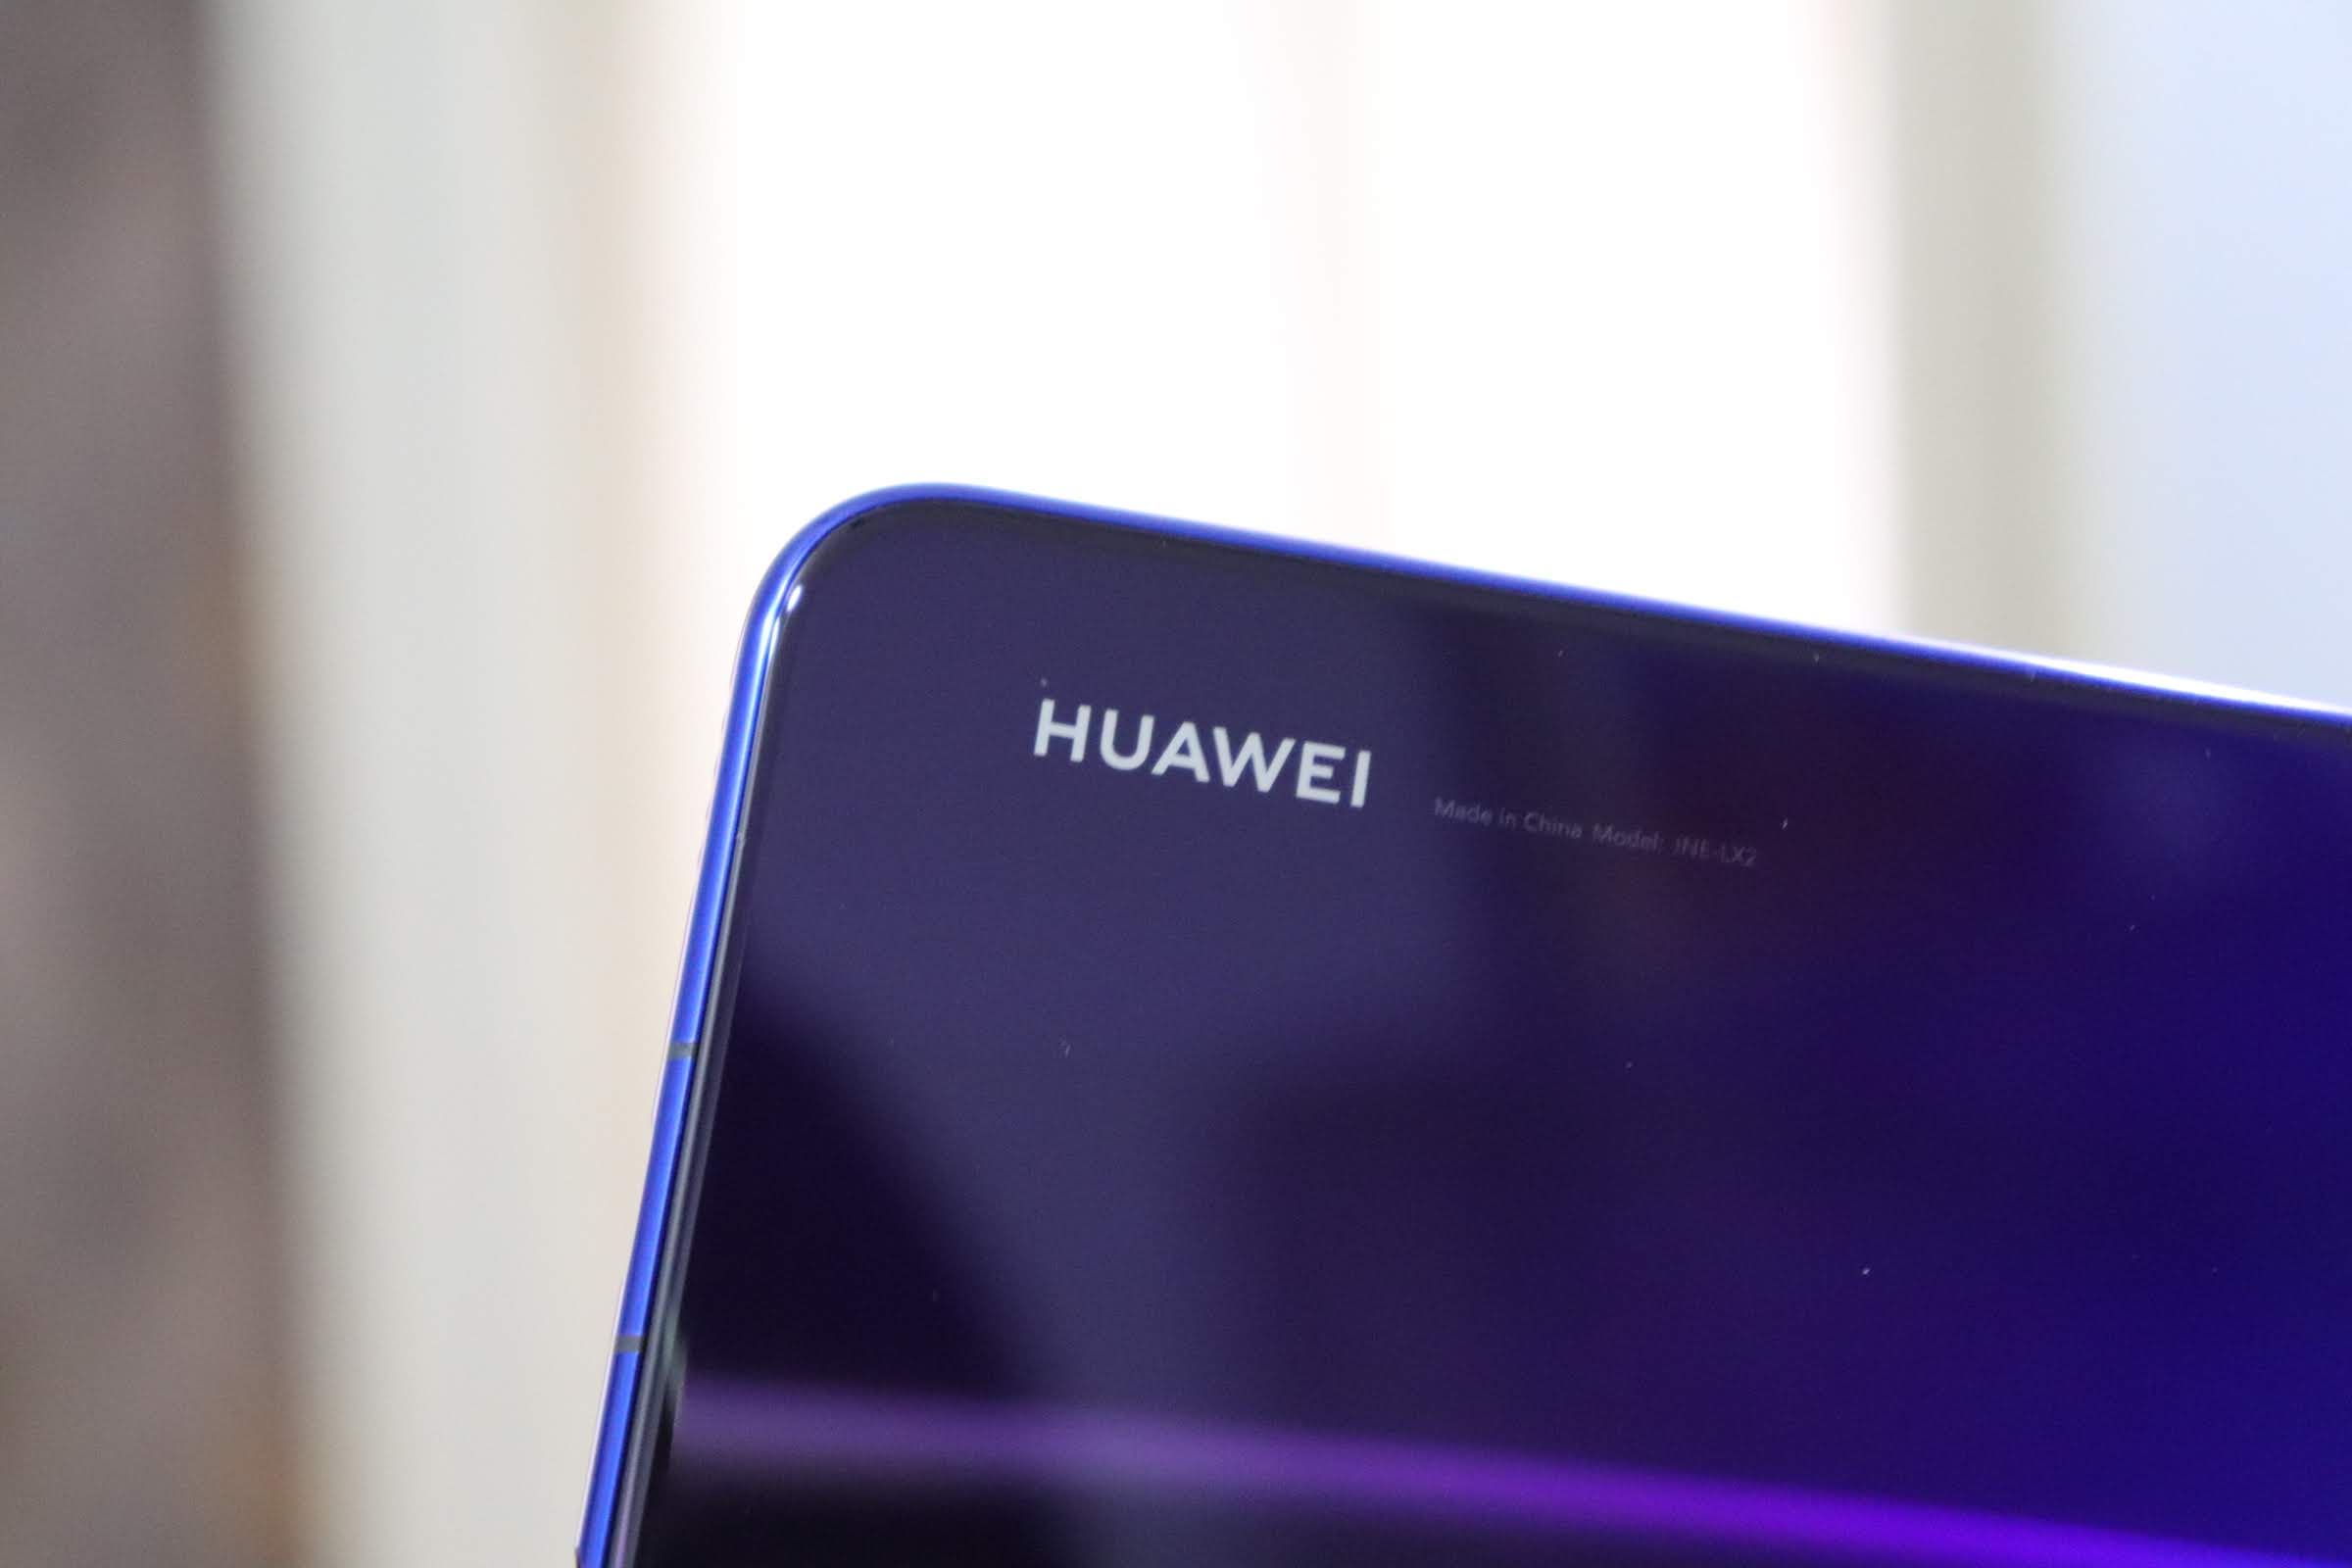 Huawei Android 10 update